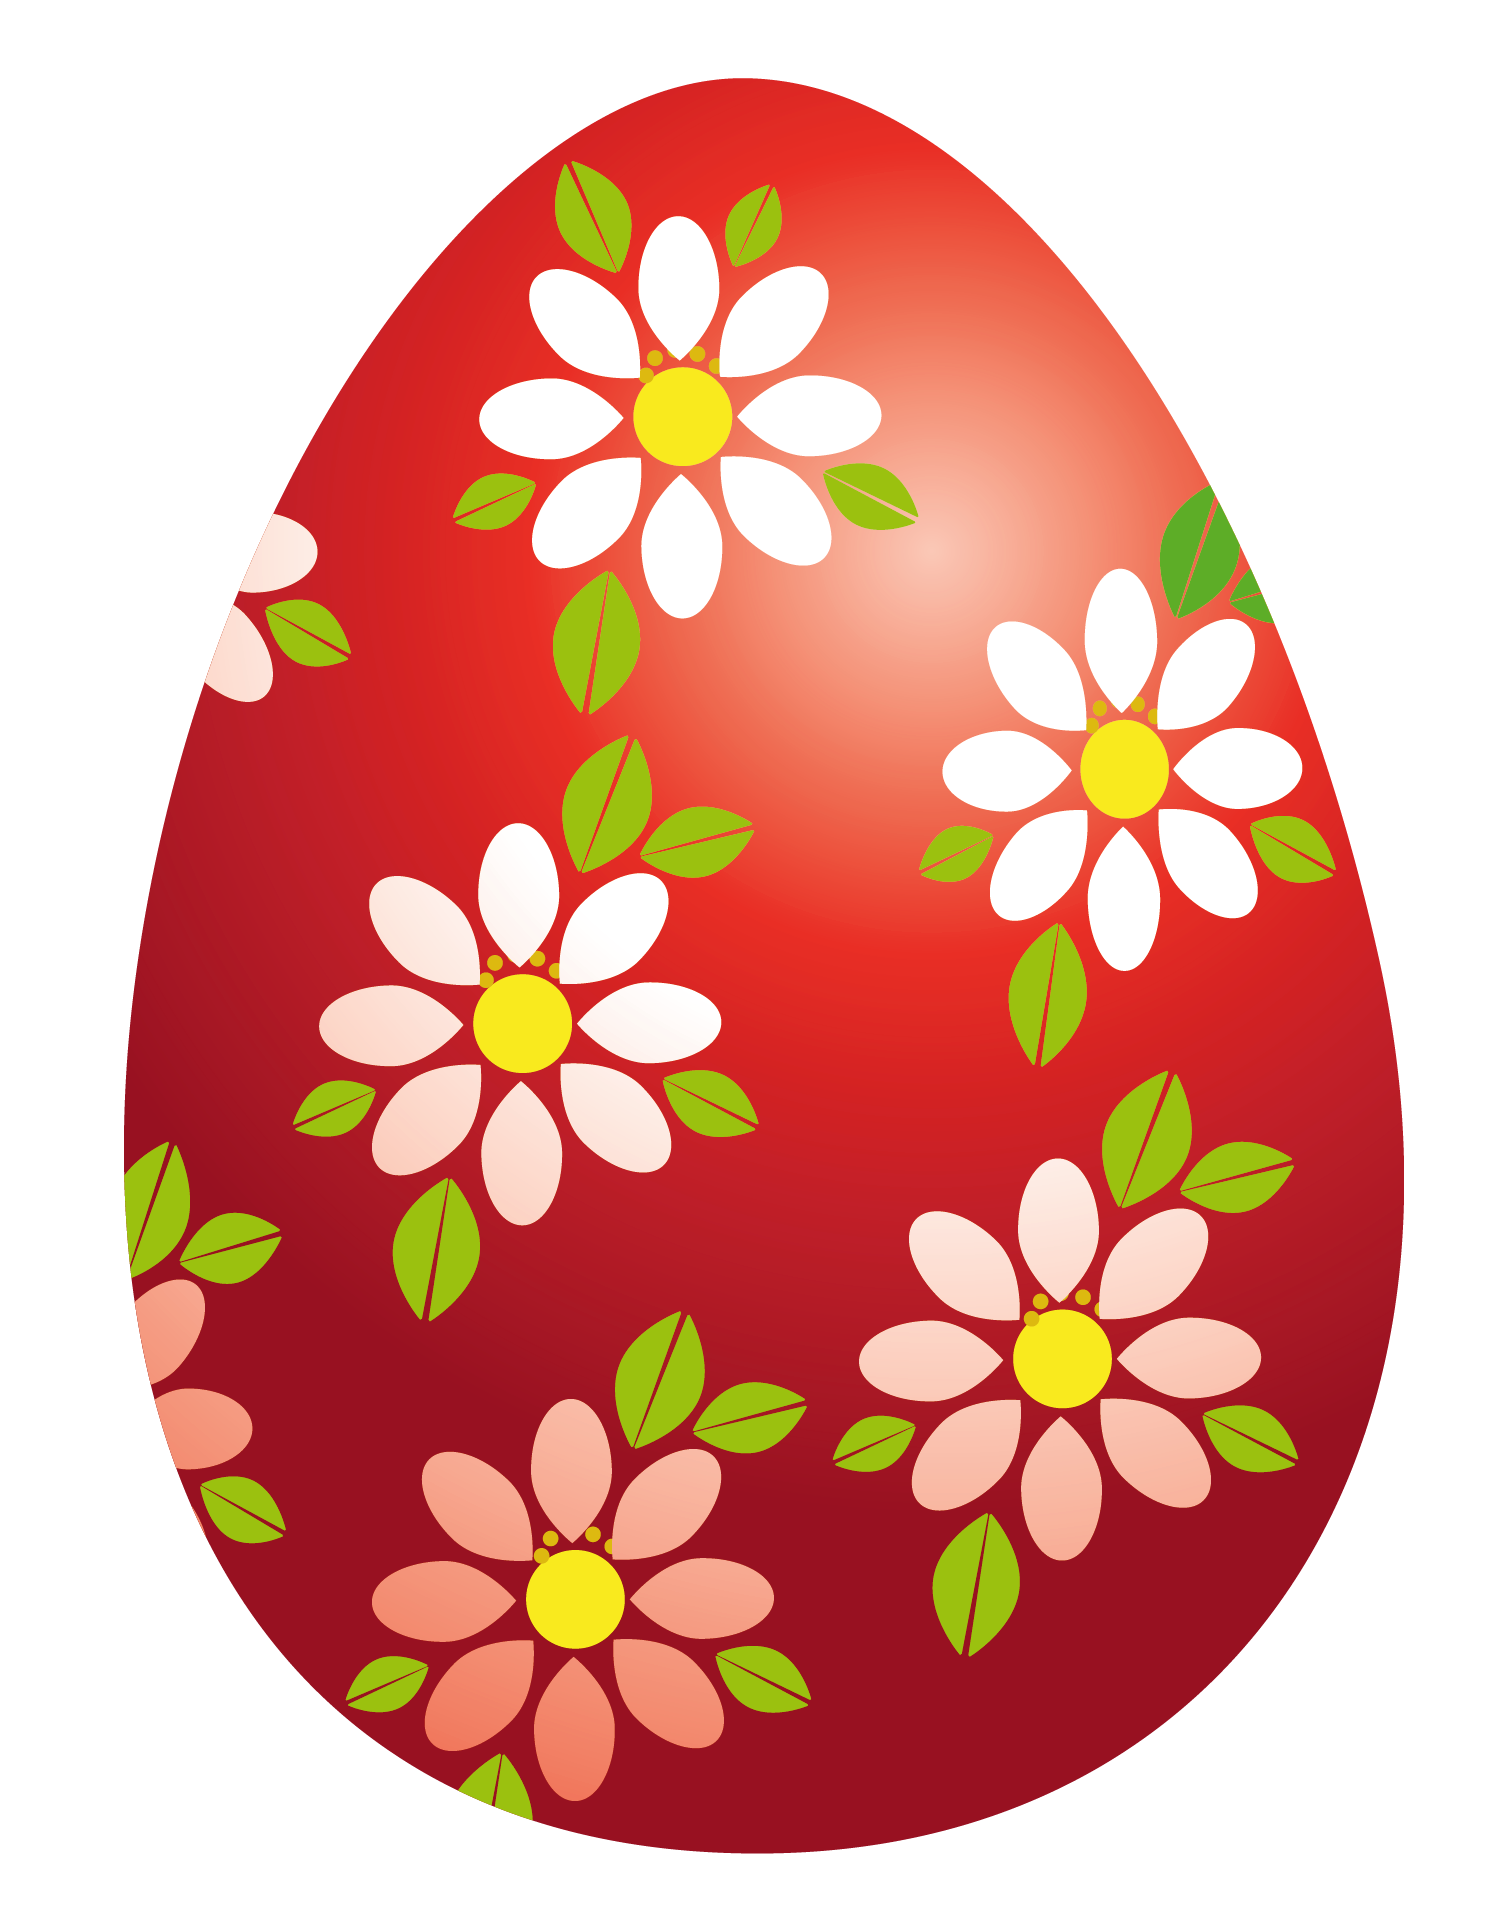 Easter Bunny Red Easter egg Clip art.